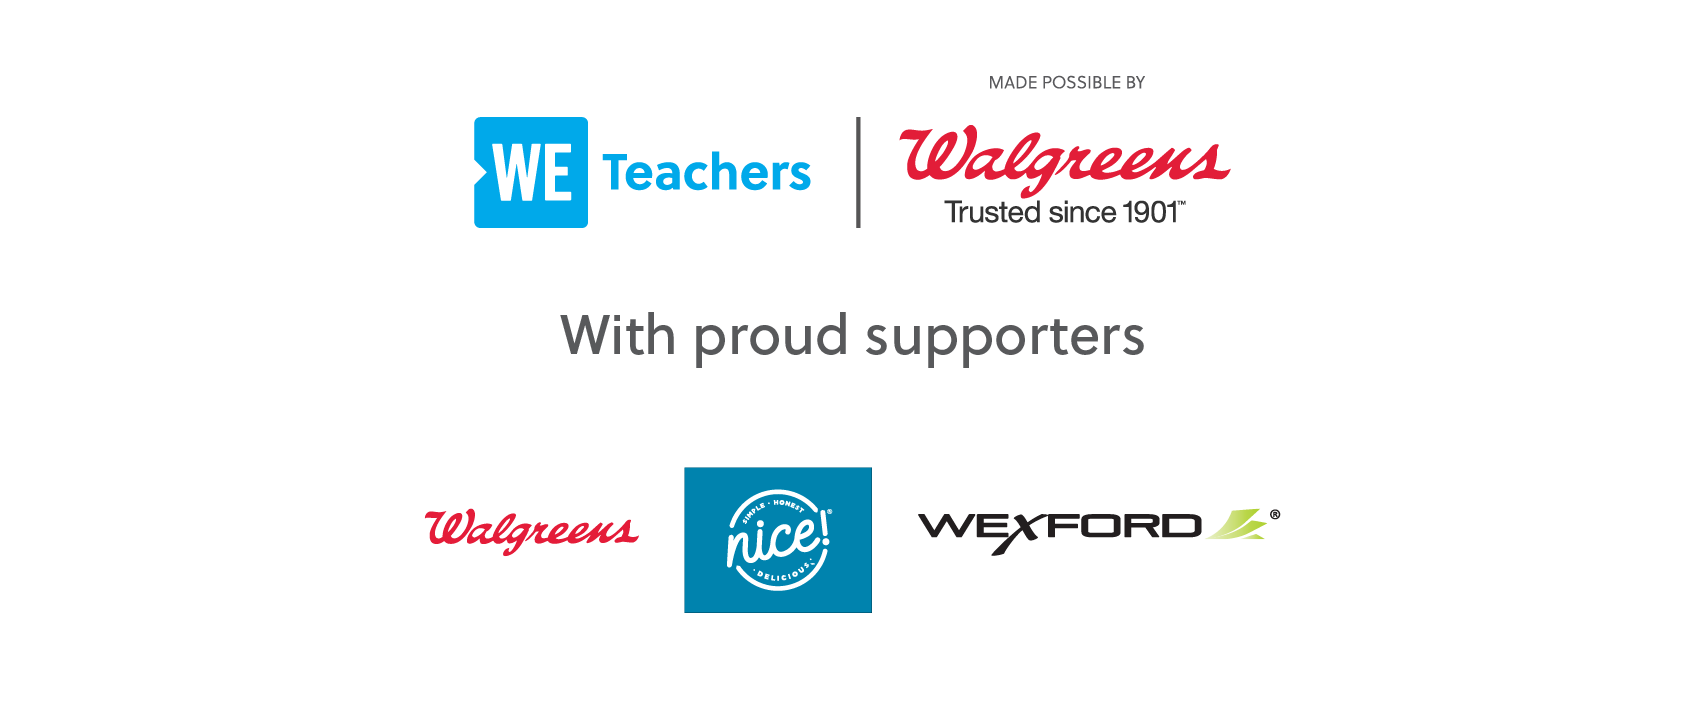 WE Teachers Made Possible by Walgreens and Proudly Supported by Walgreens, Nice!, and Wexford